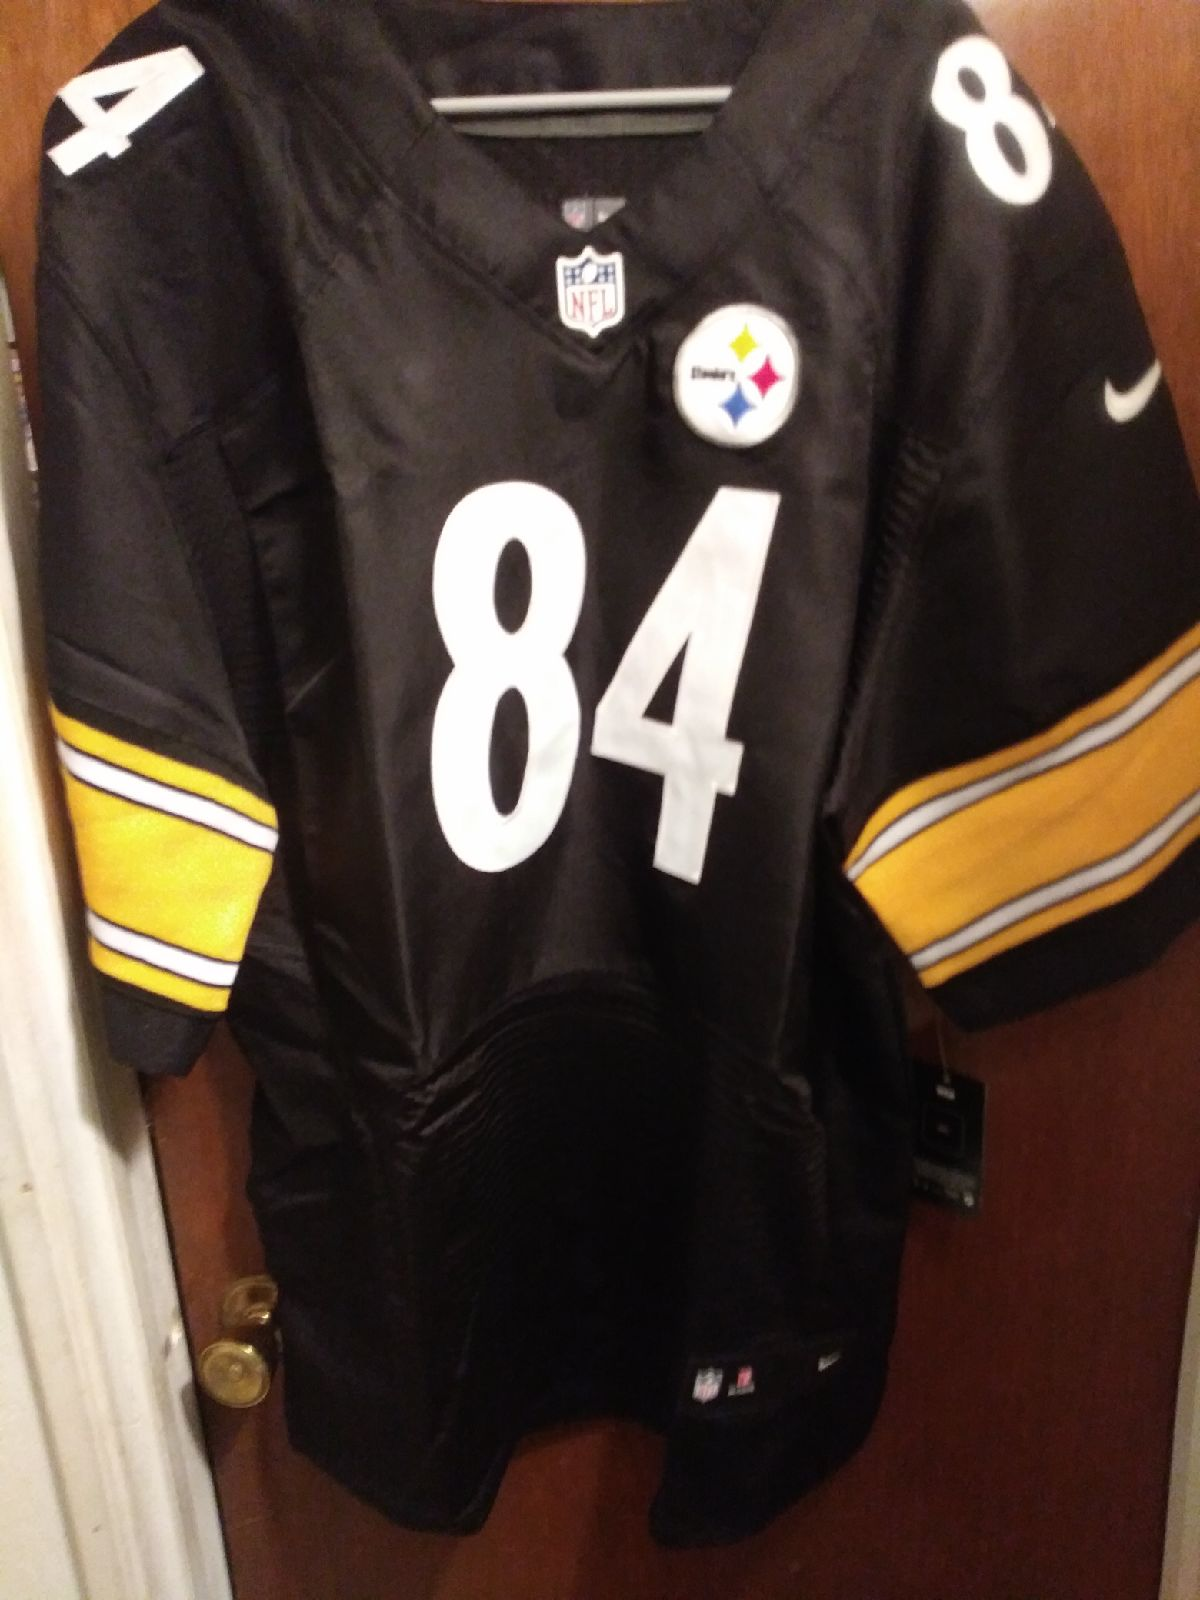 Jersey Steelers #84 Brown 4x